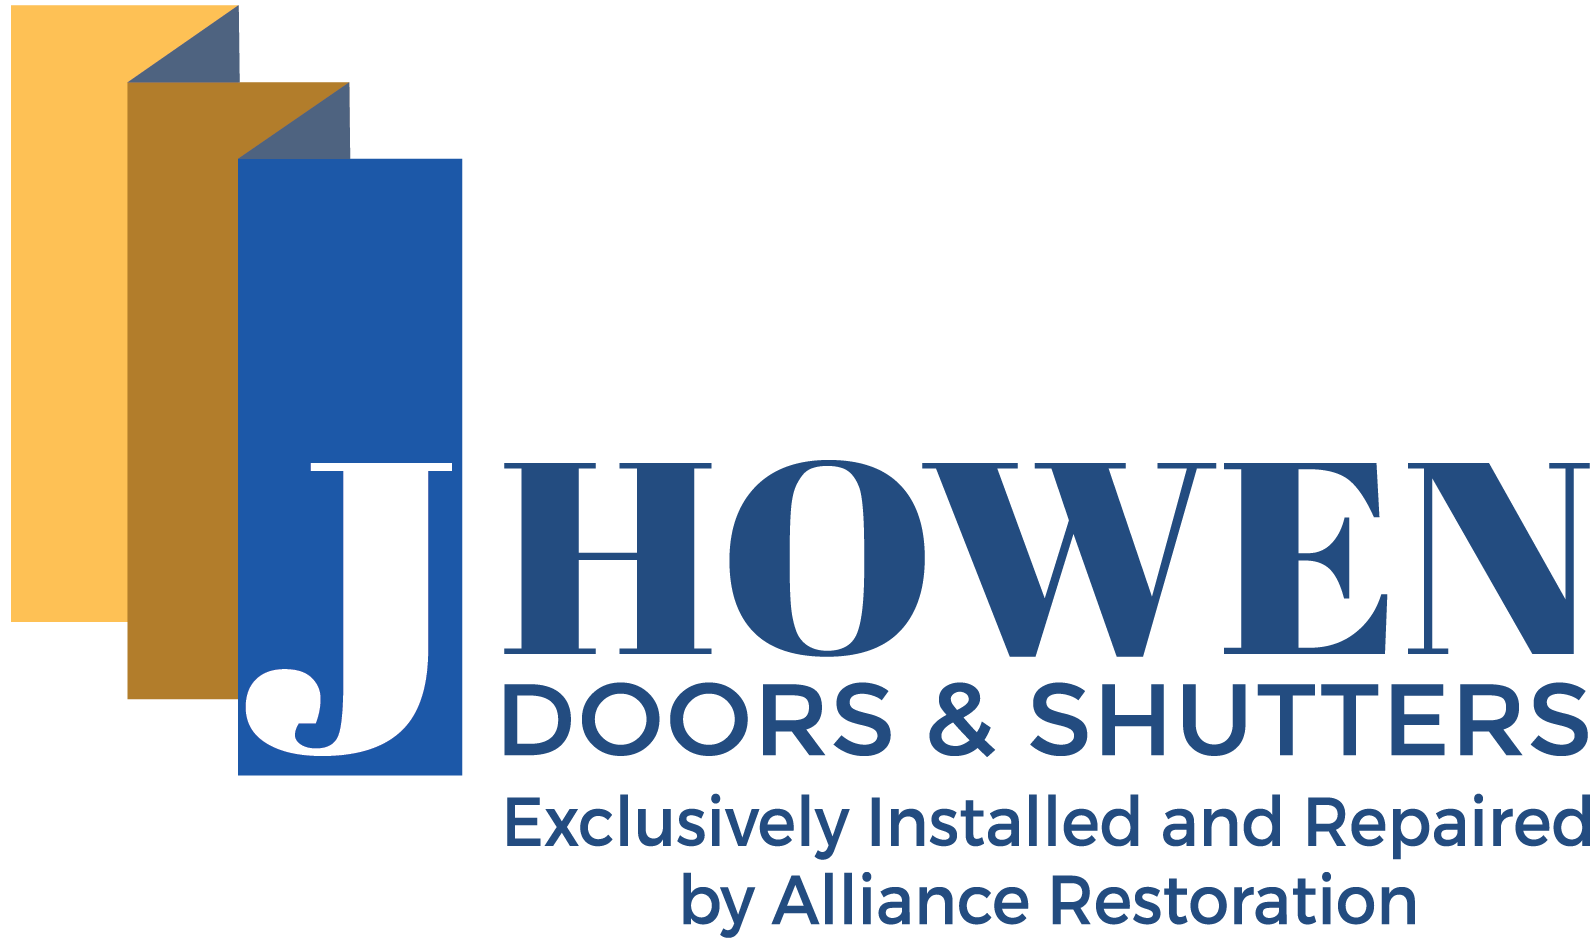 J Howen Doors & Shutters, Inc. Exclusively Installed and repaired by Alliance Restoration